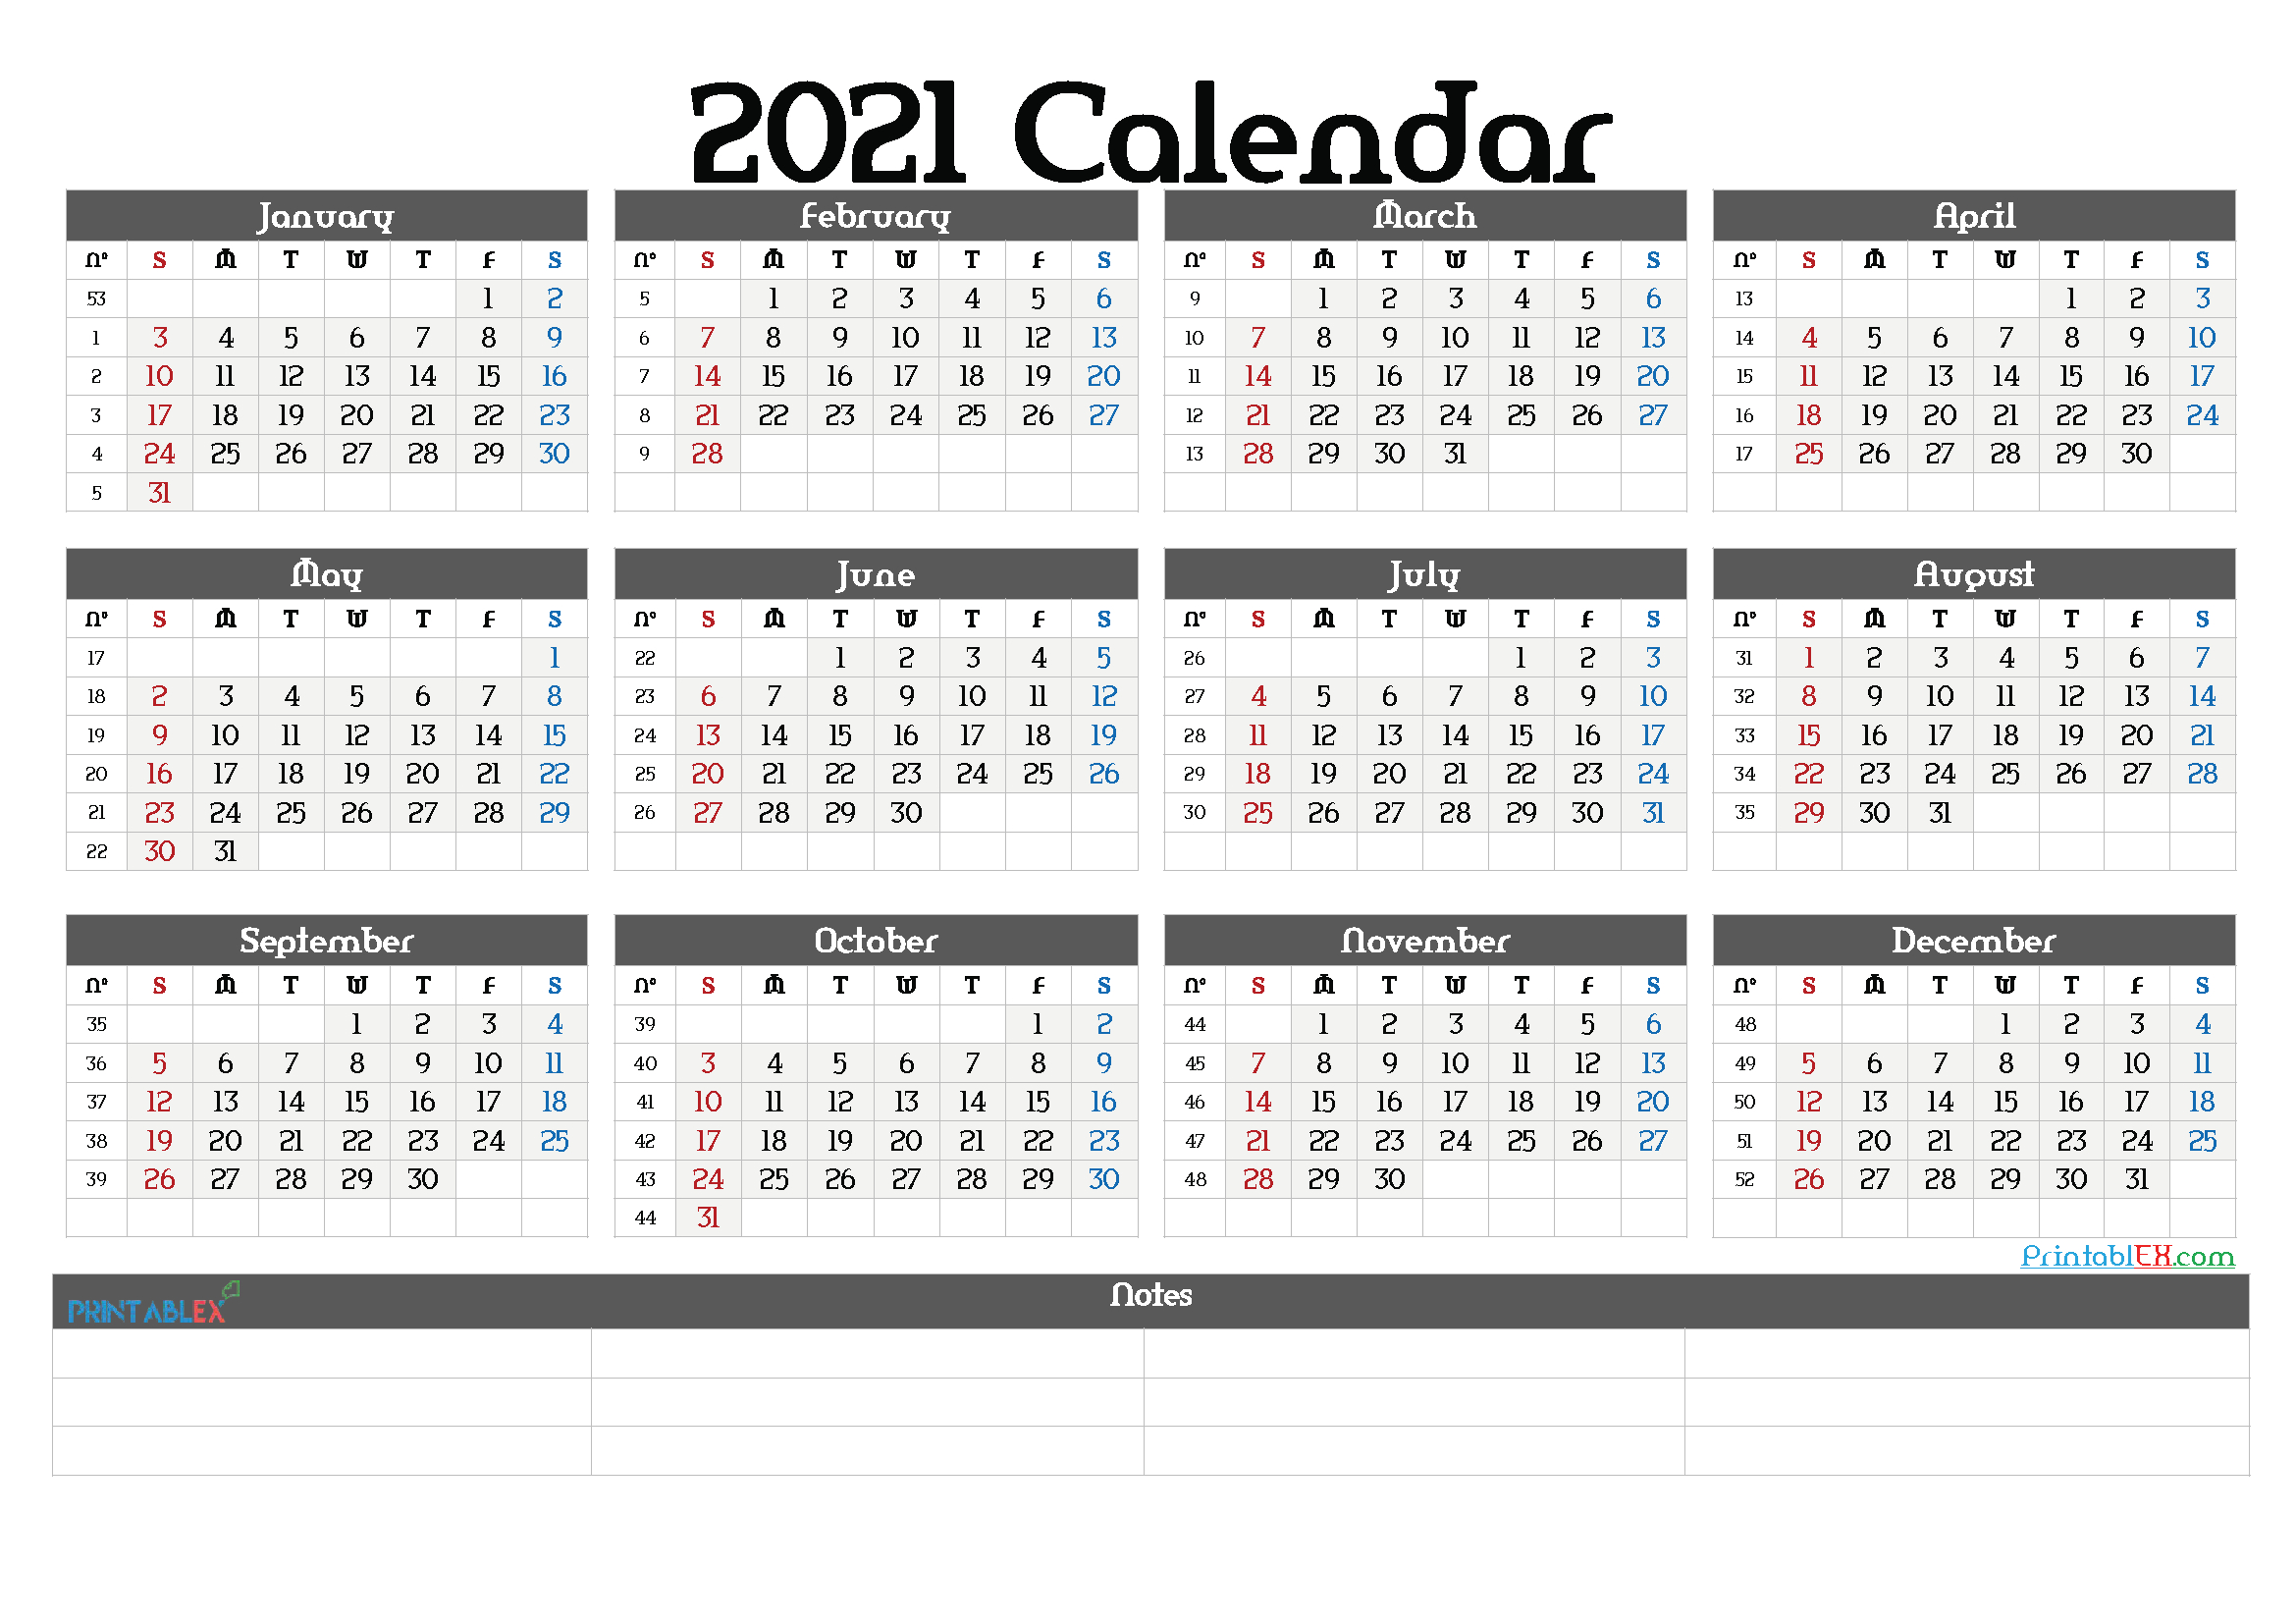 2021 Calendar With Weeks Numbered Printable March